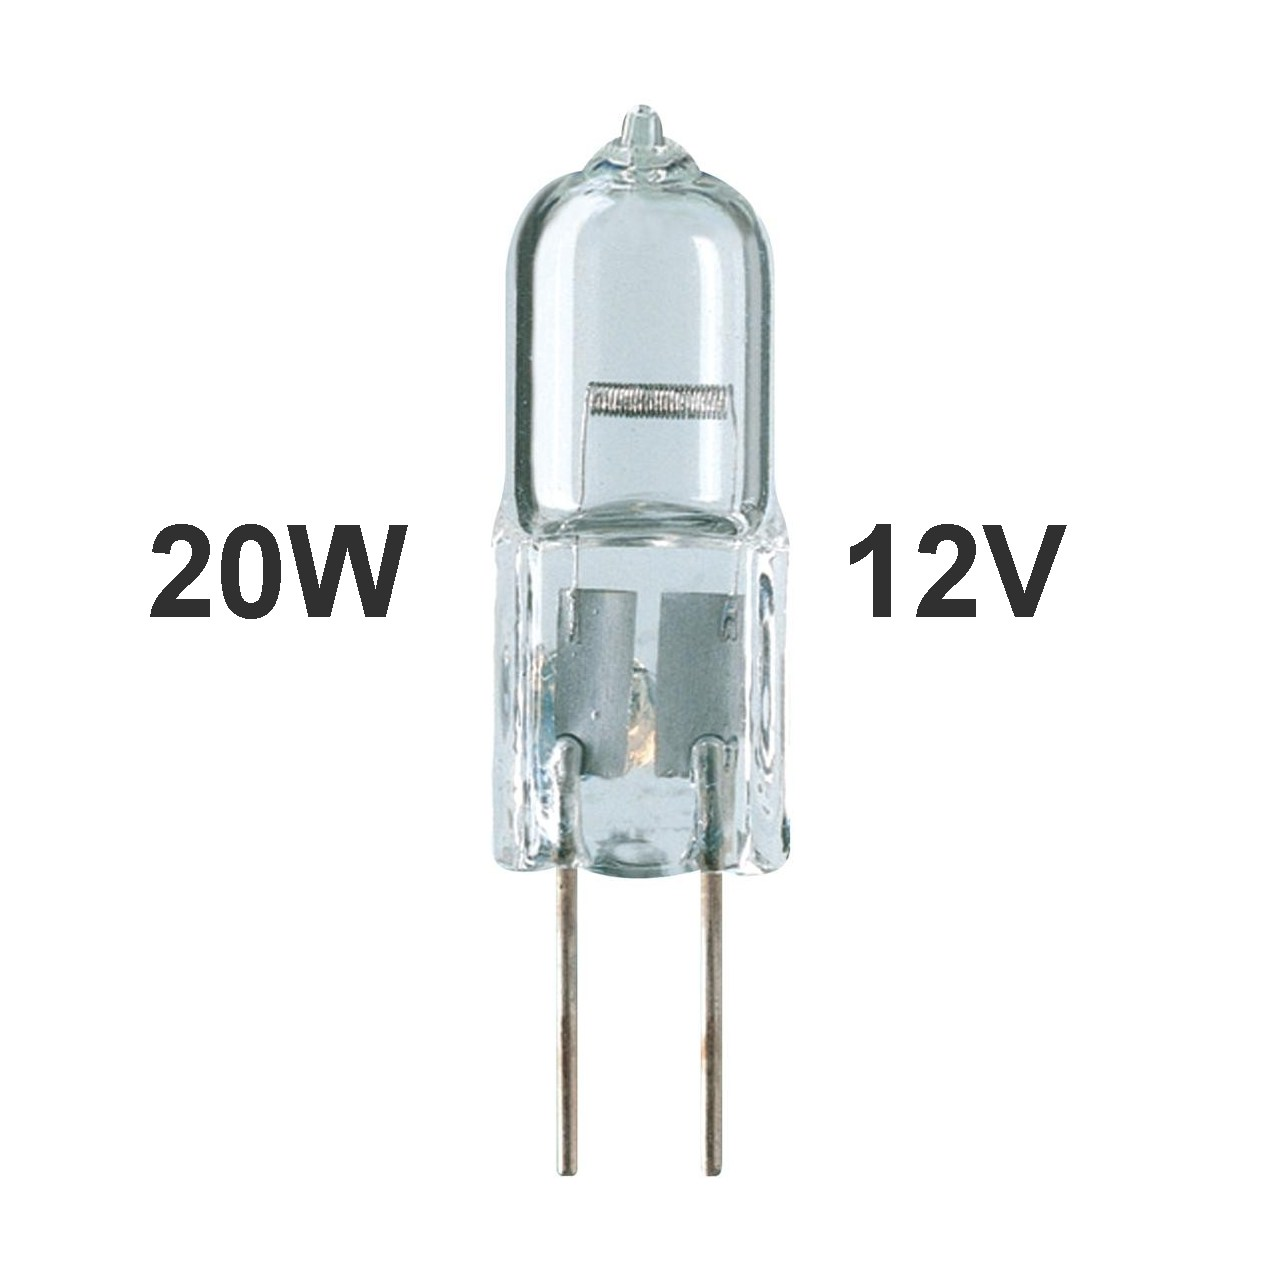 brizzo lighting stores 20w halogen g4 bi pin bulb 12v low voltage. Black Bedroom Furniture Sets. Home Design Ideas